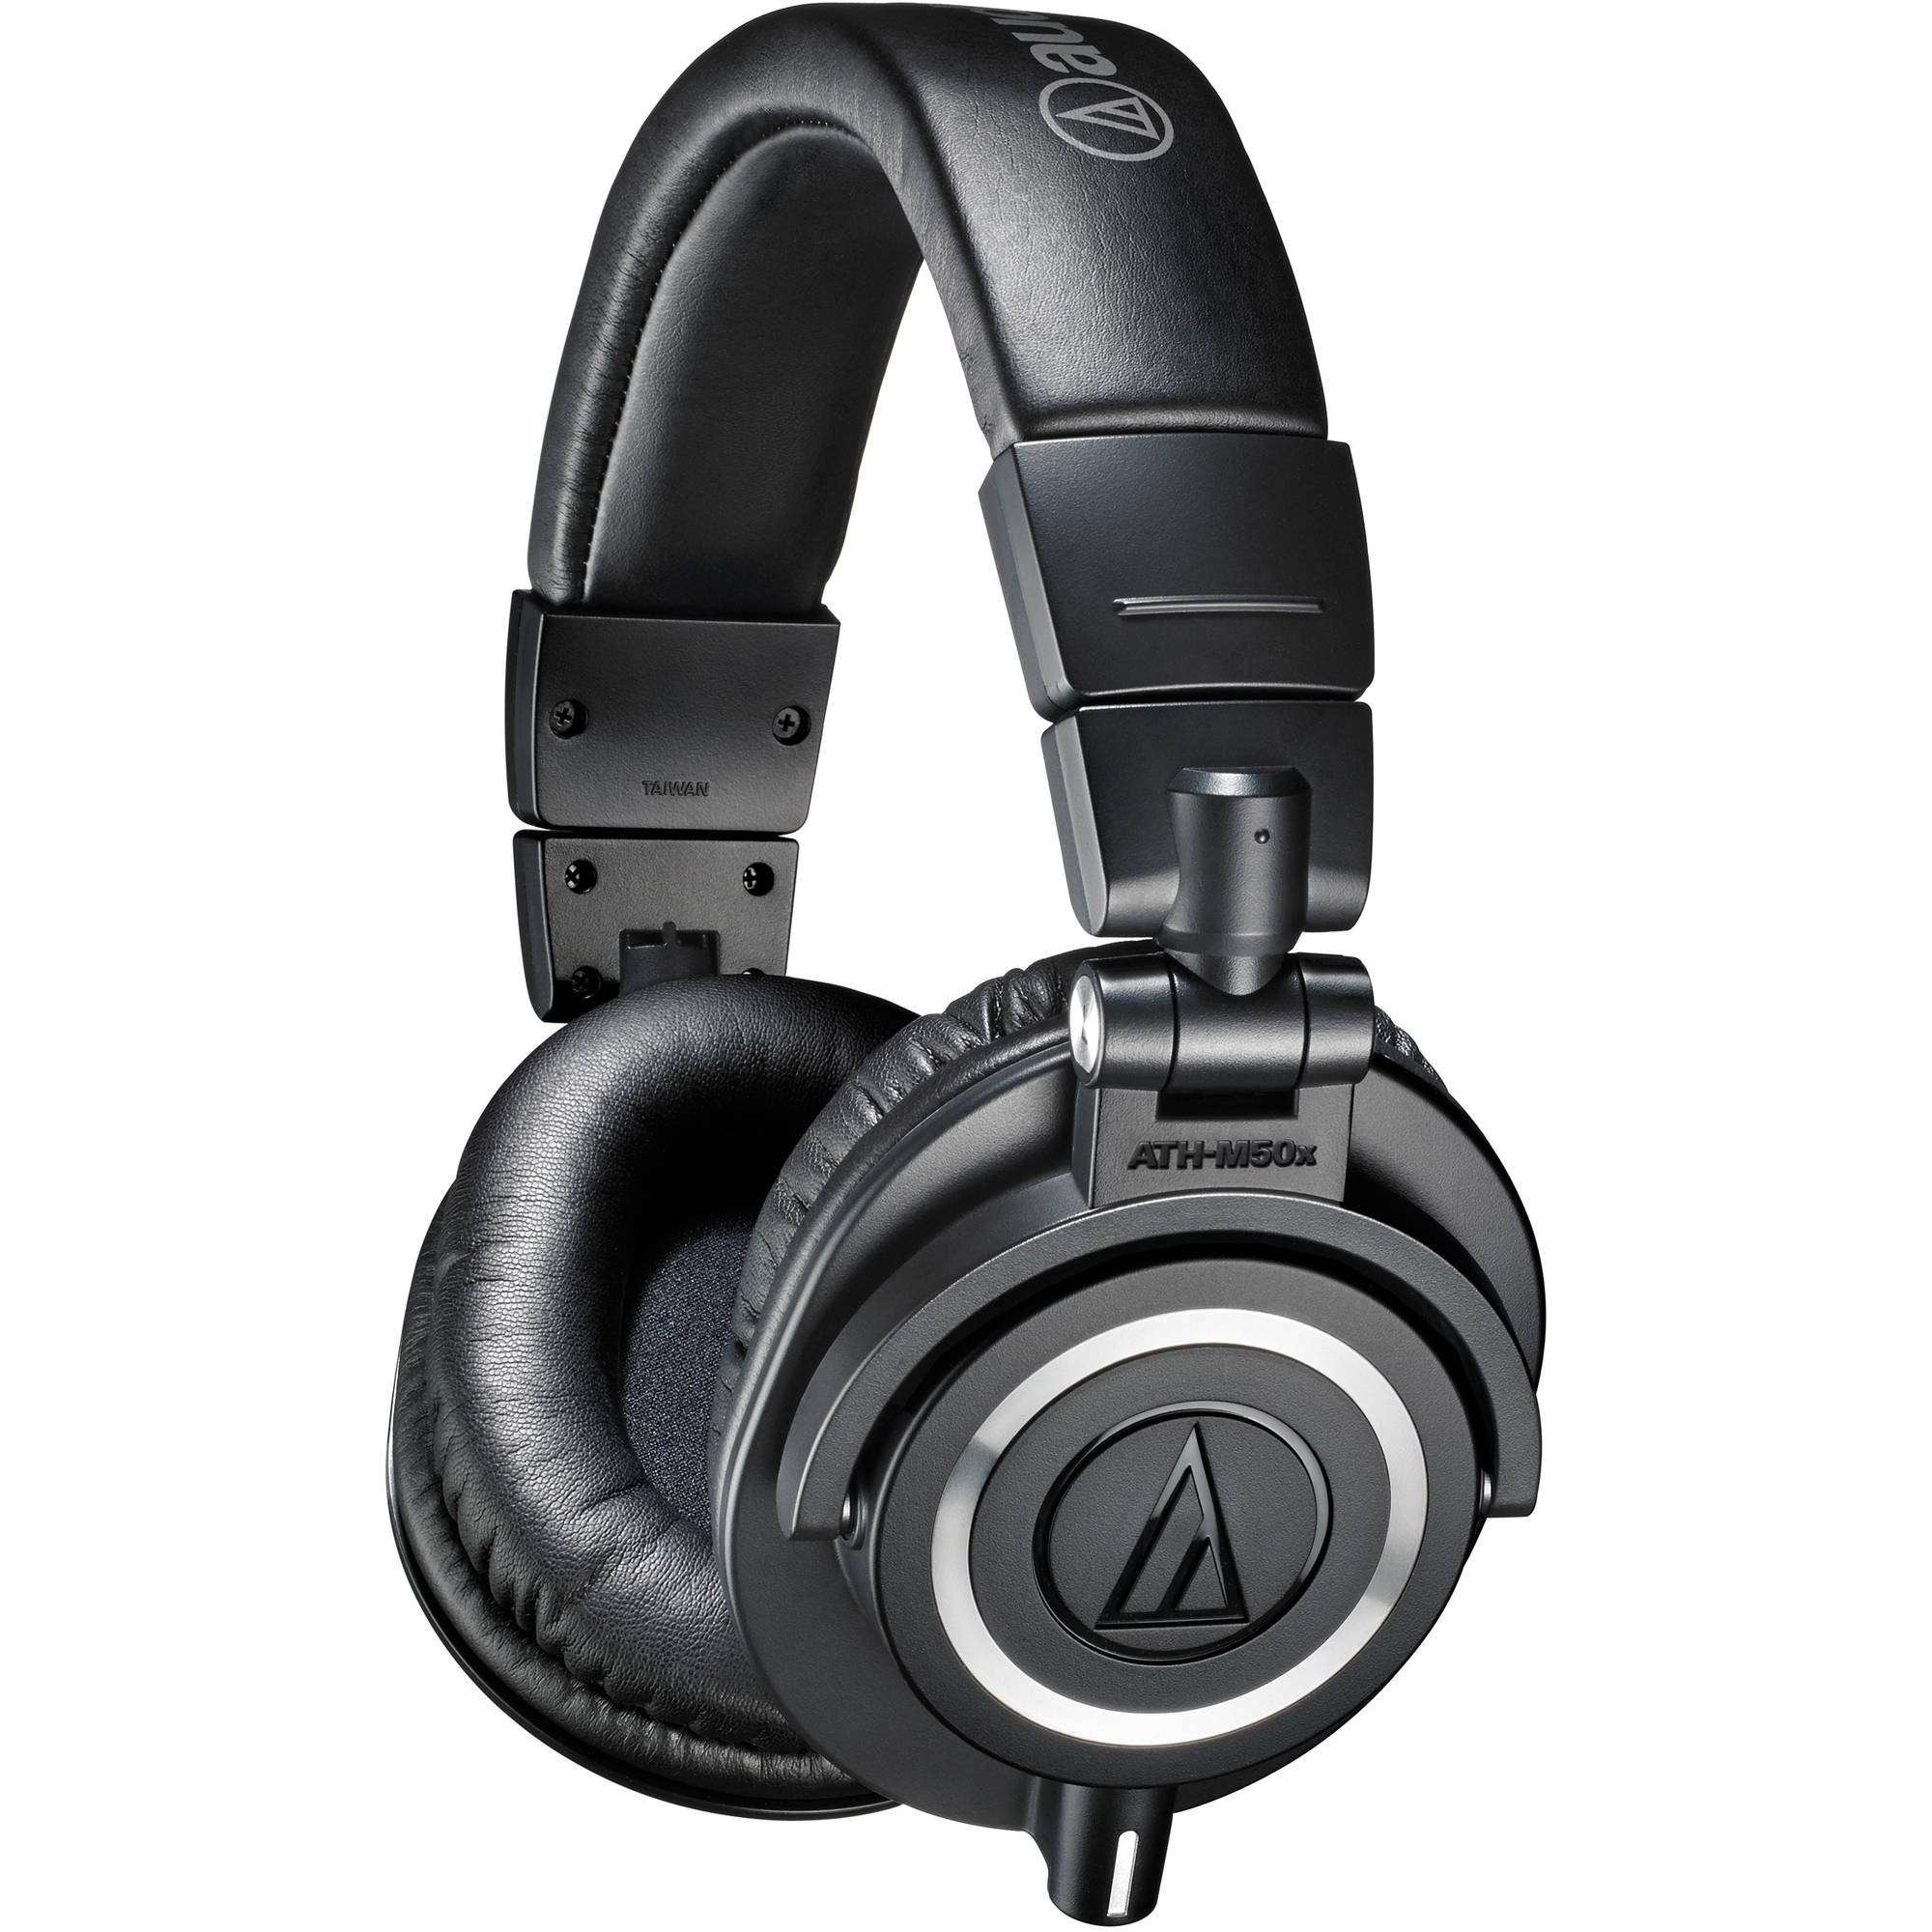 Audio-Technica ATH M50x Professional Monitor Headphones, Available in Multiple Colors by Audio-Technica